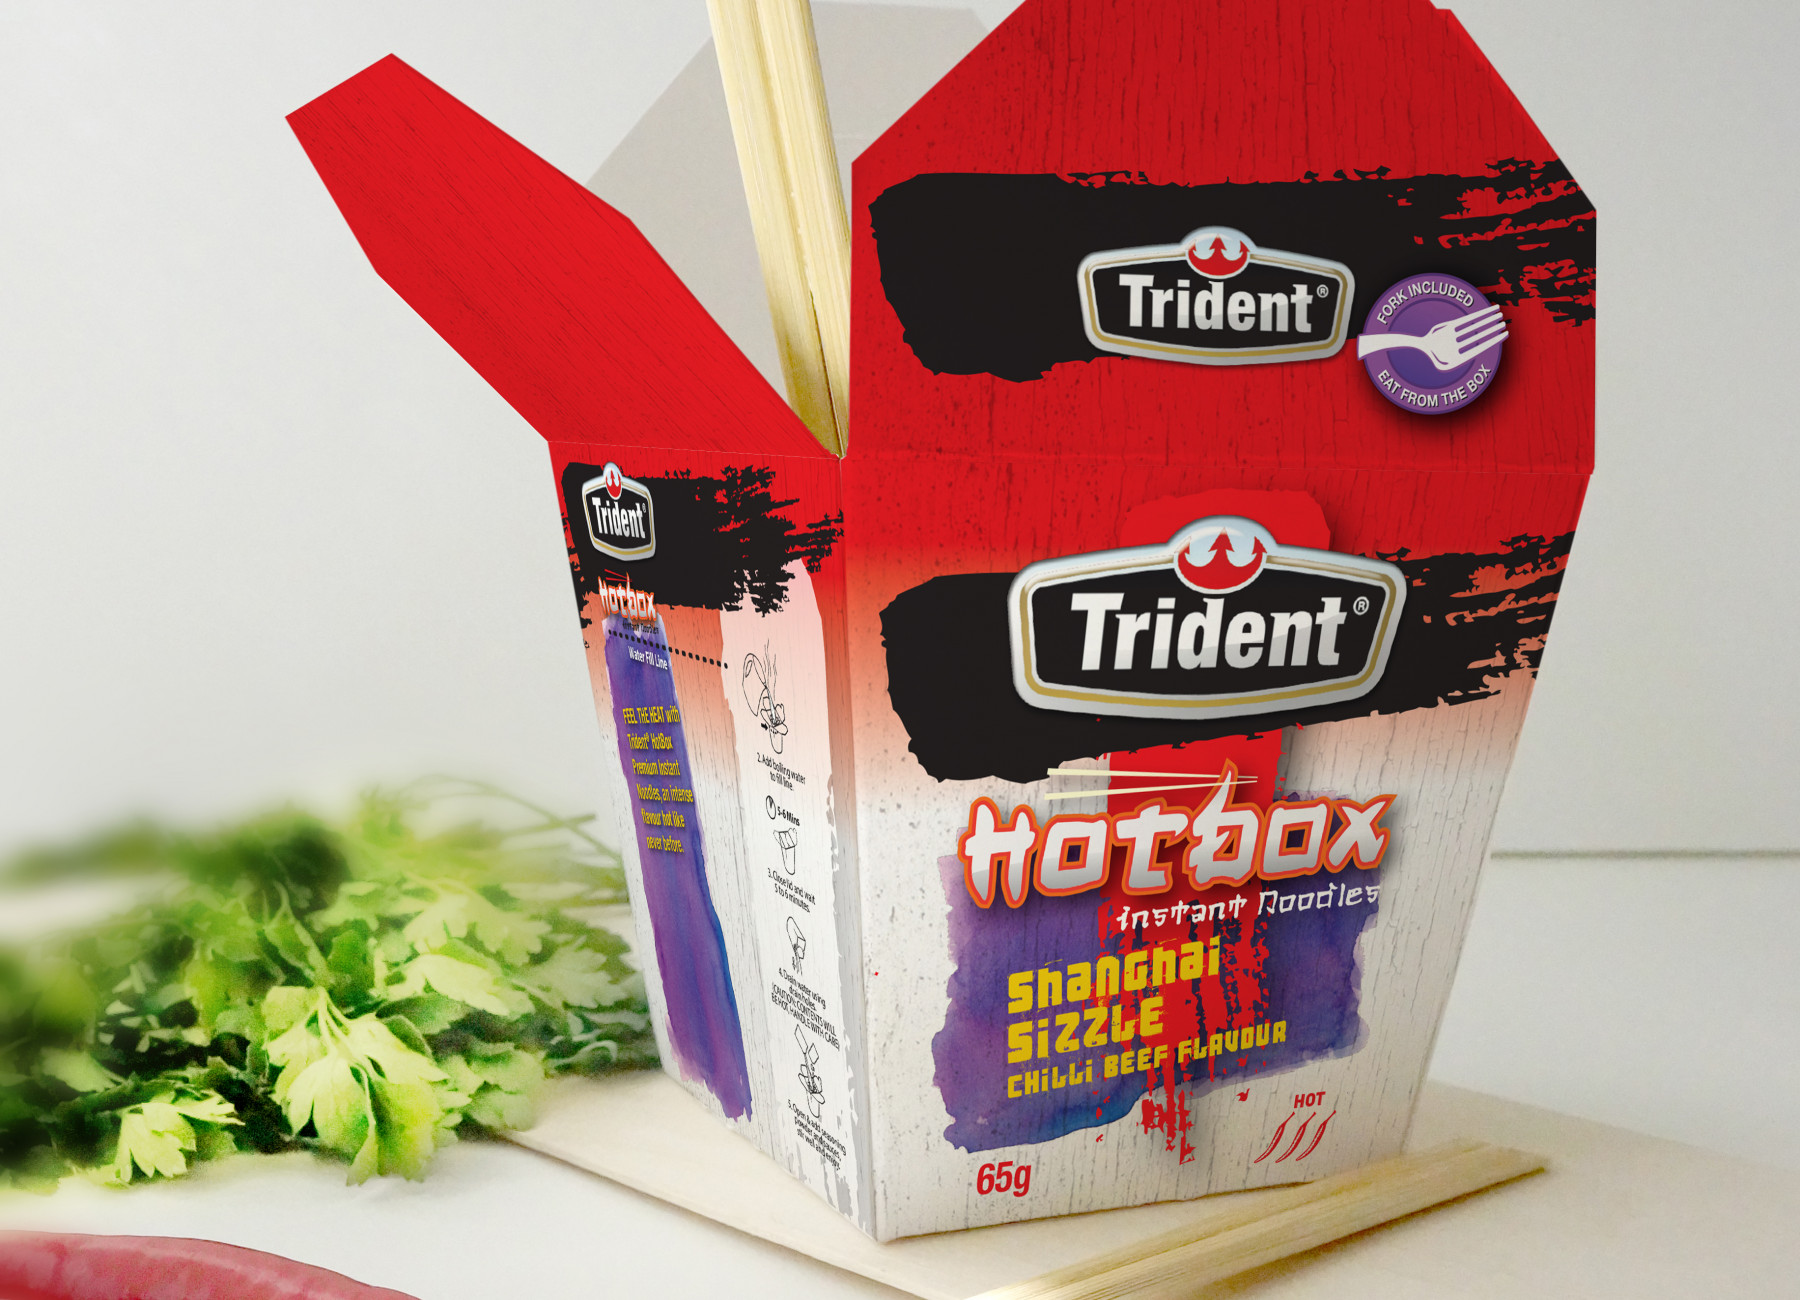 Trident Hotbox 05 Noodle Box